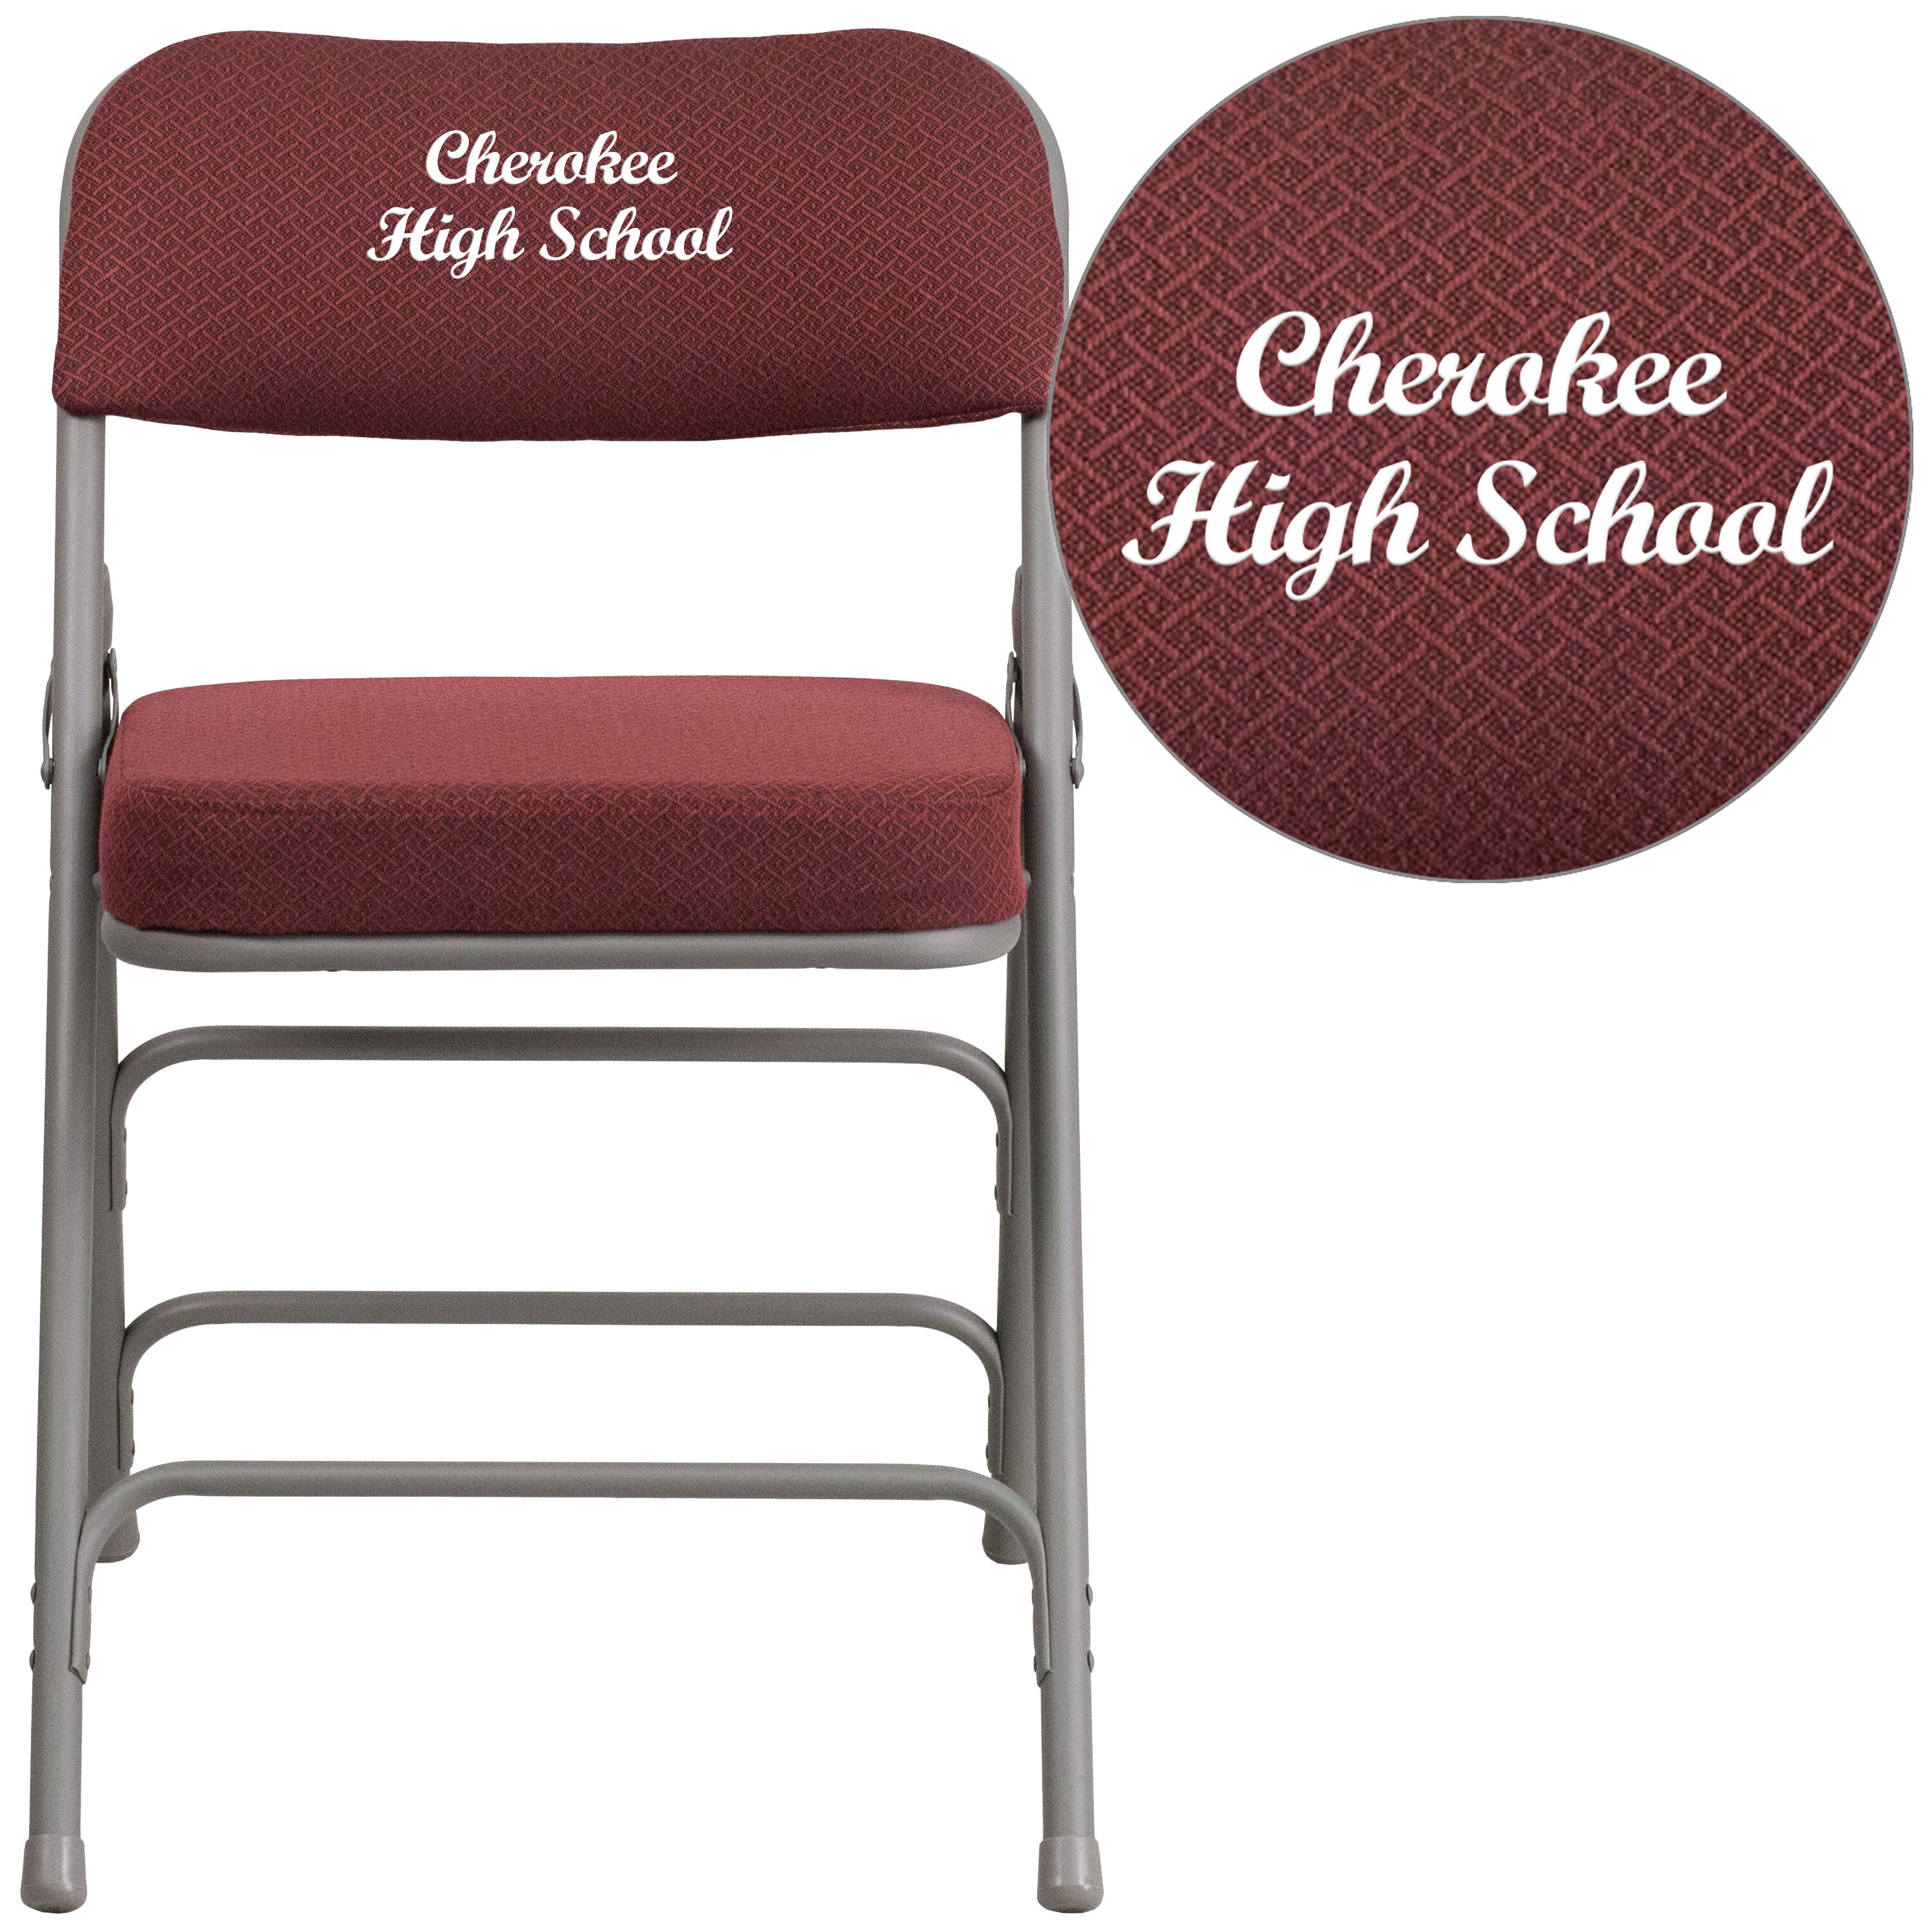 Our Embroidered HERCULES Series Premium Curved Triple Braced U0026 Double  Hinged Burgundy Fabric Metal Folding Chair